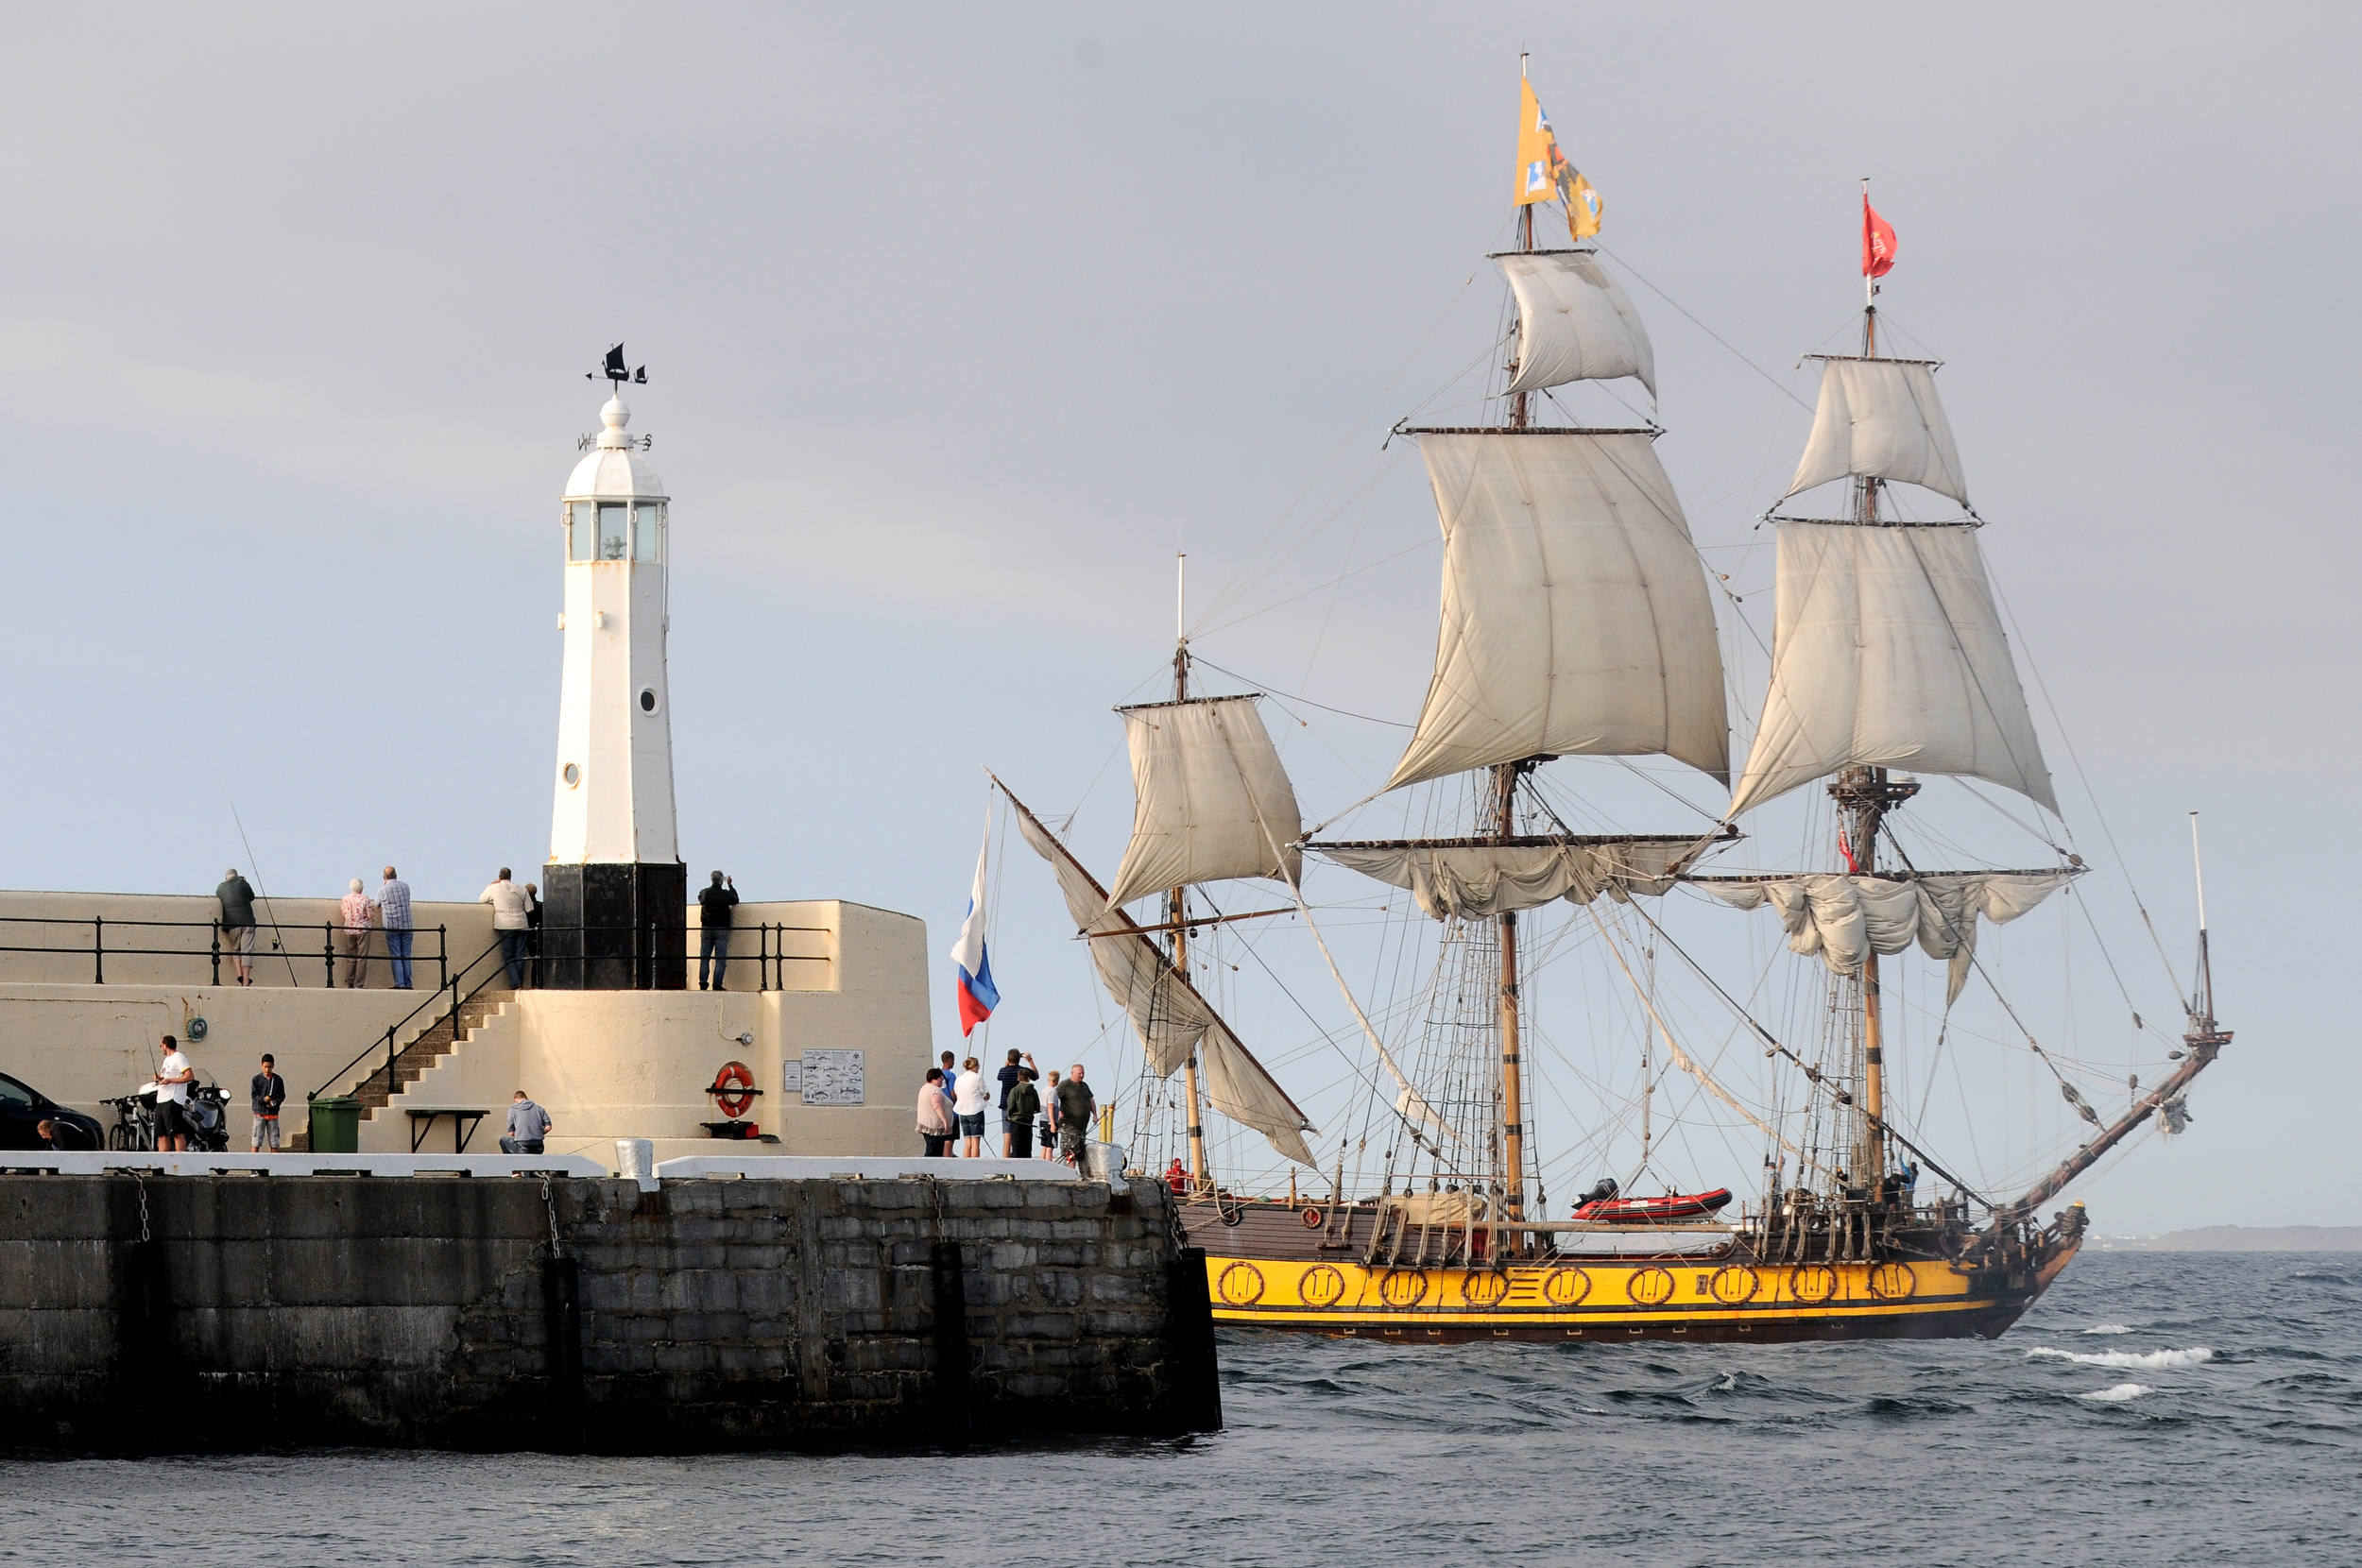 The tall ship 'Shtandart', a replica of a Russian frigate originally built in 1703, arrives in Peel